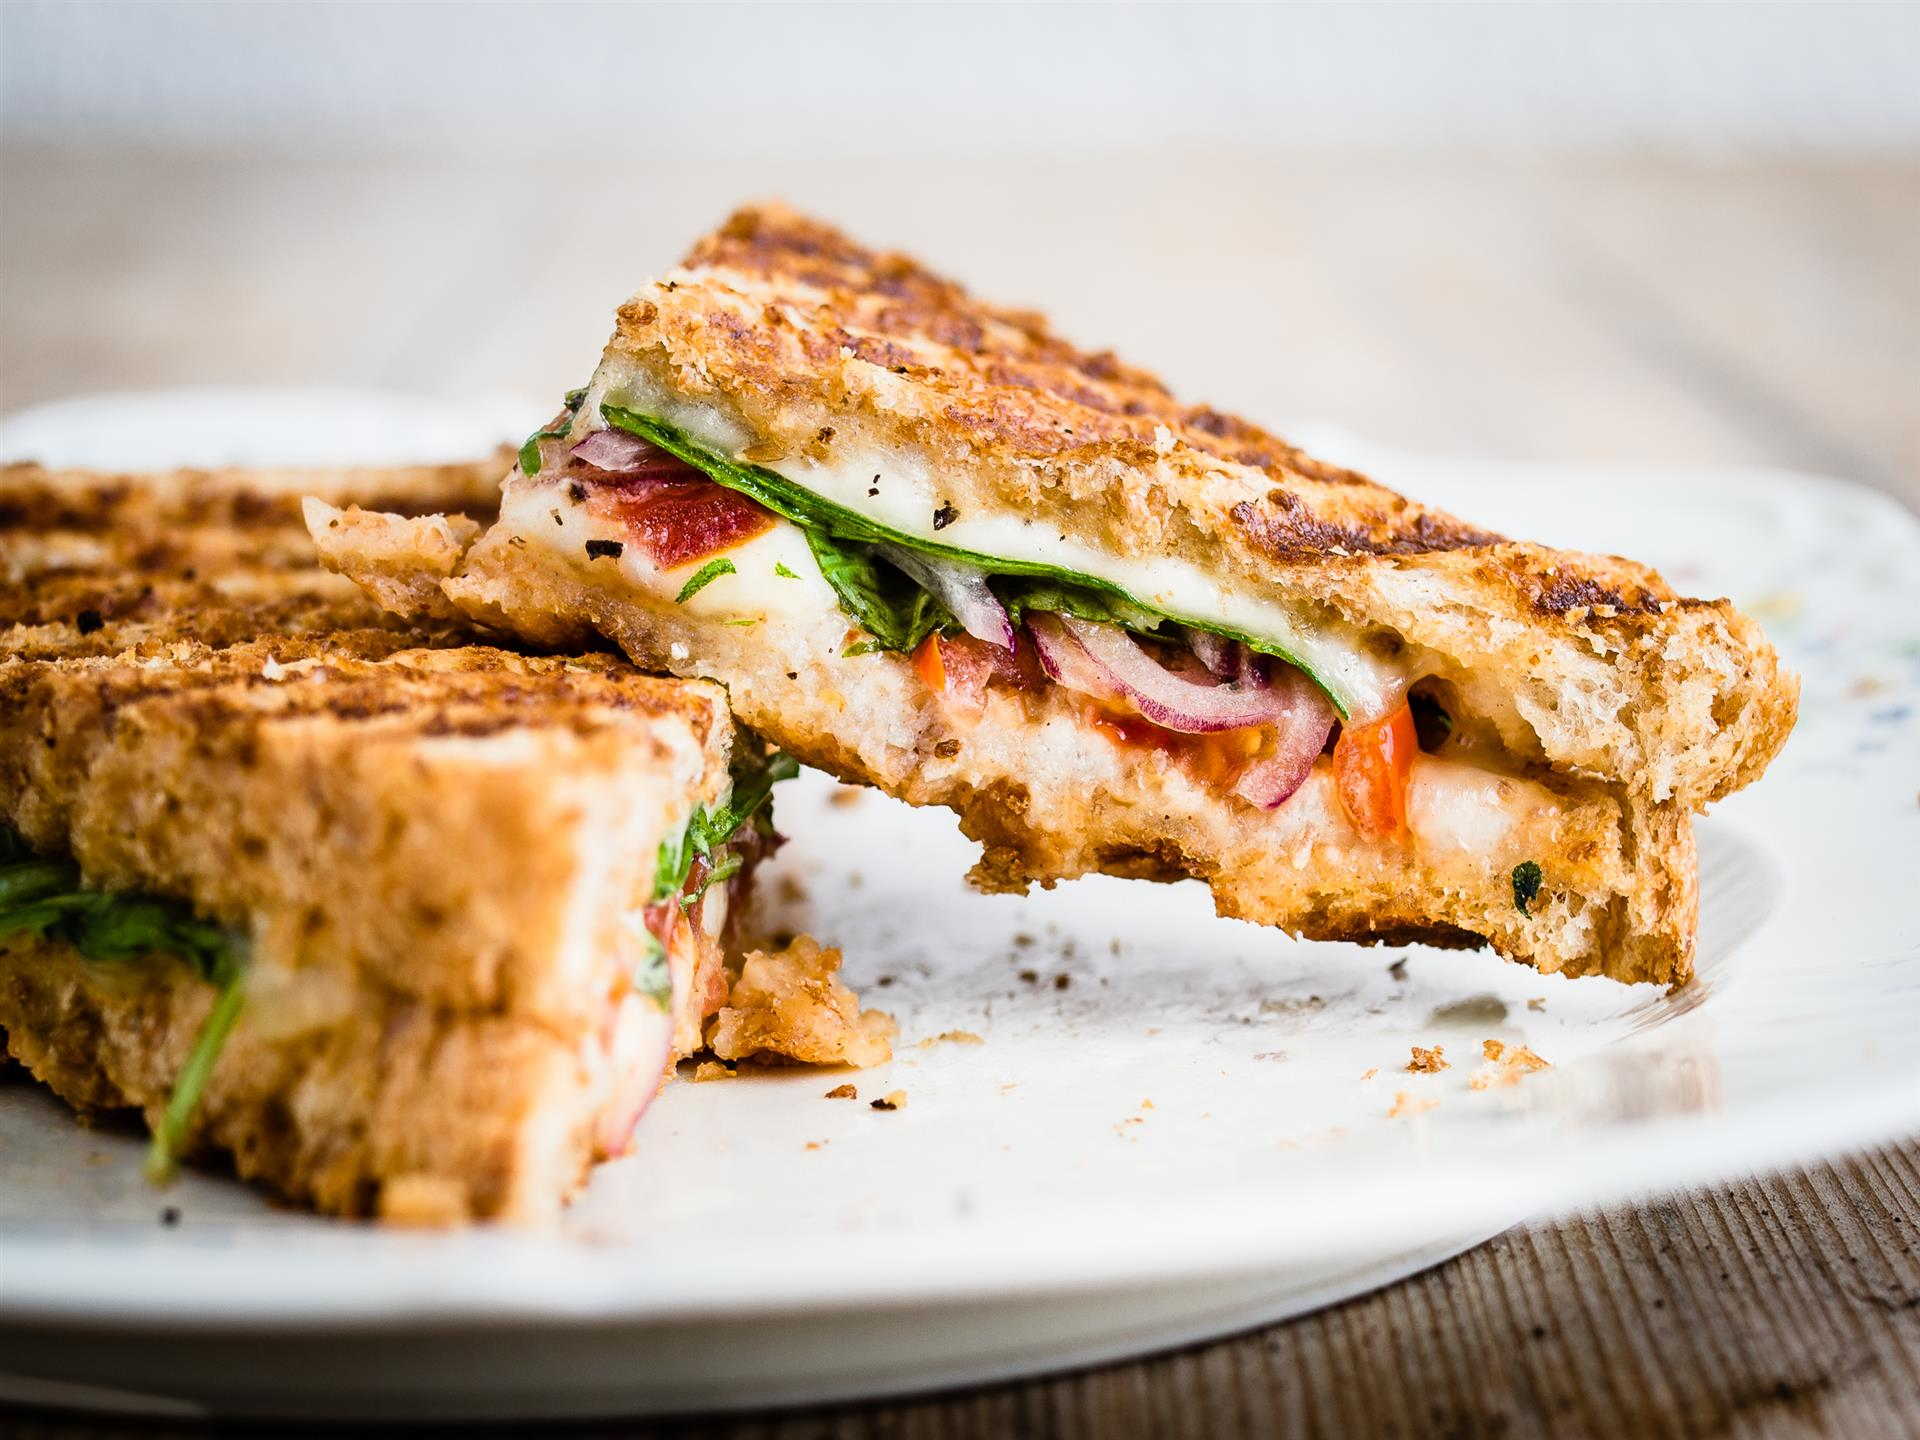 Panini with spinach, mozzarella, red onion, and tomatoes